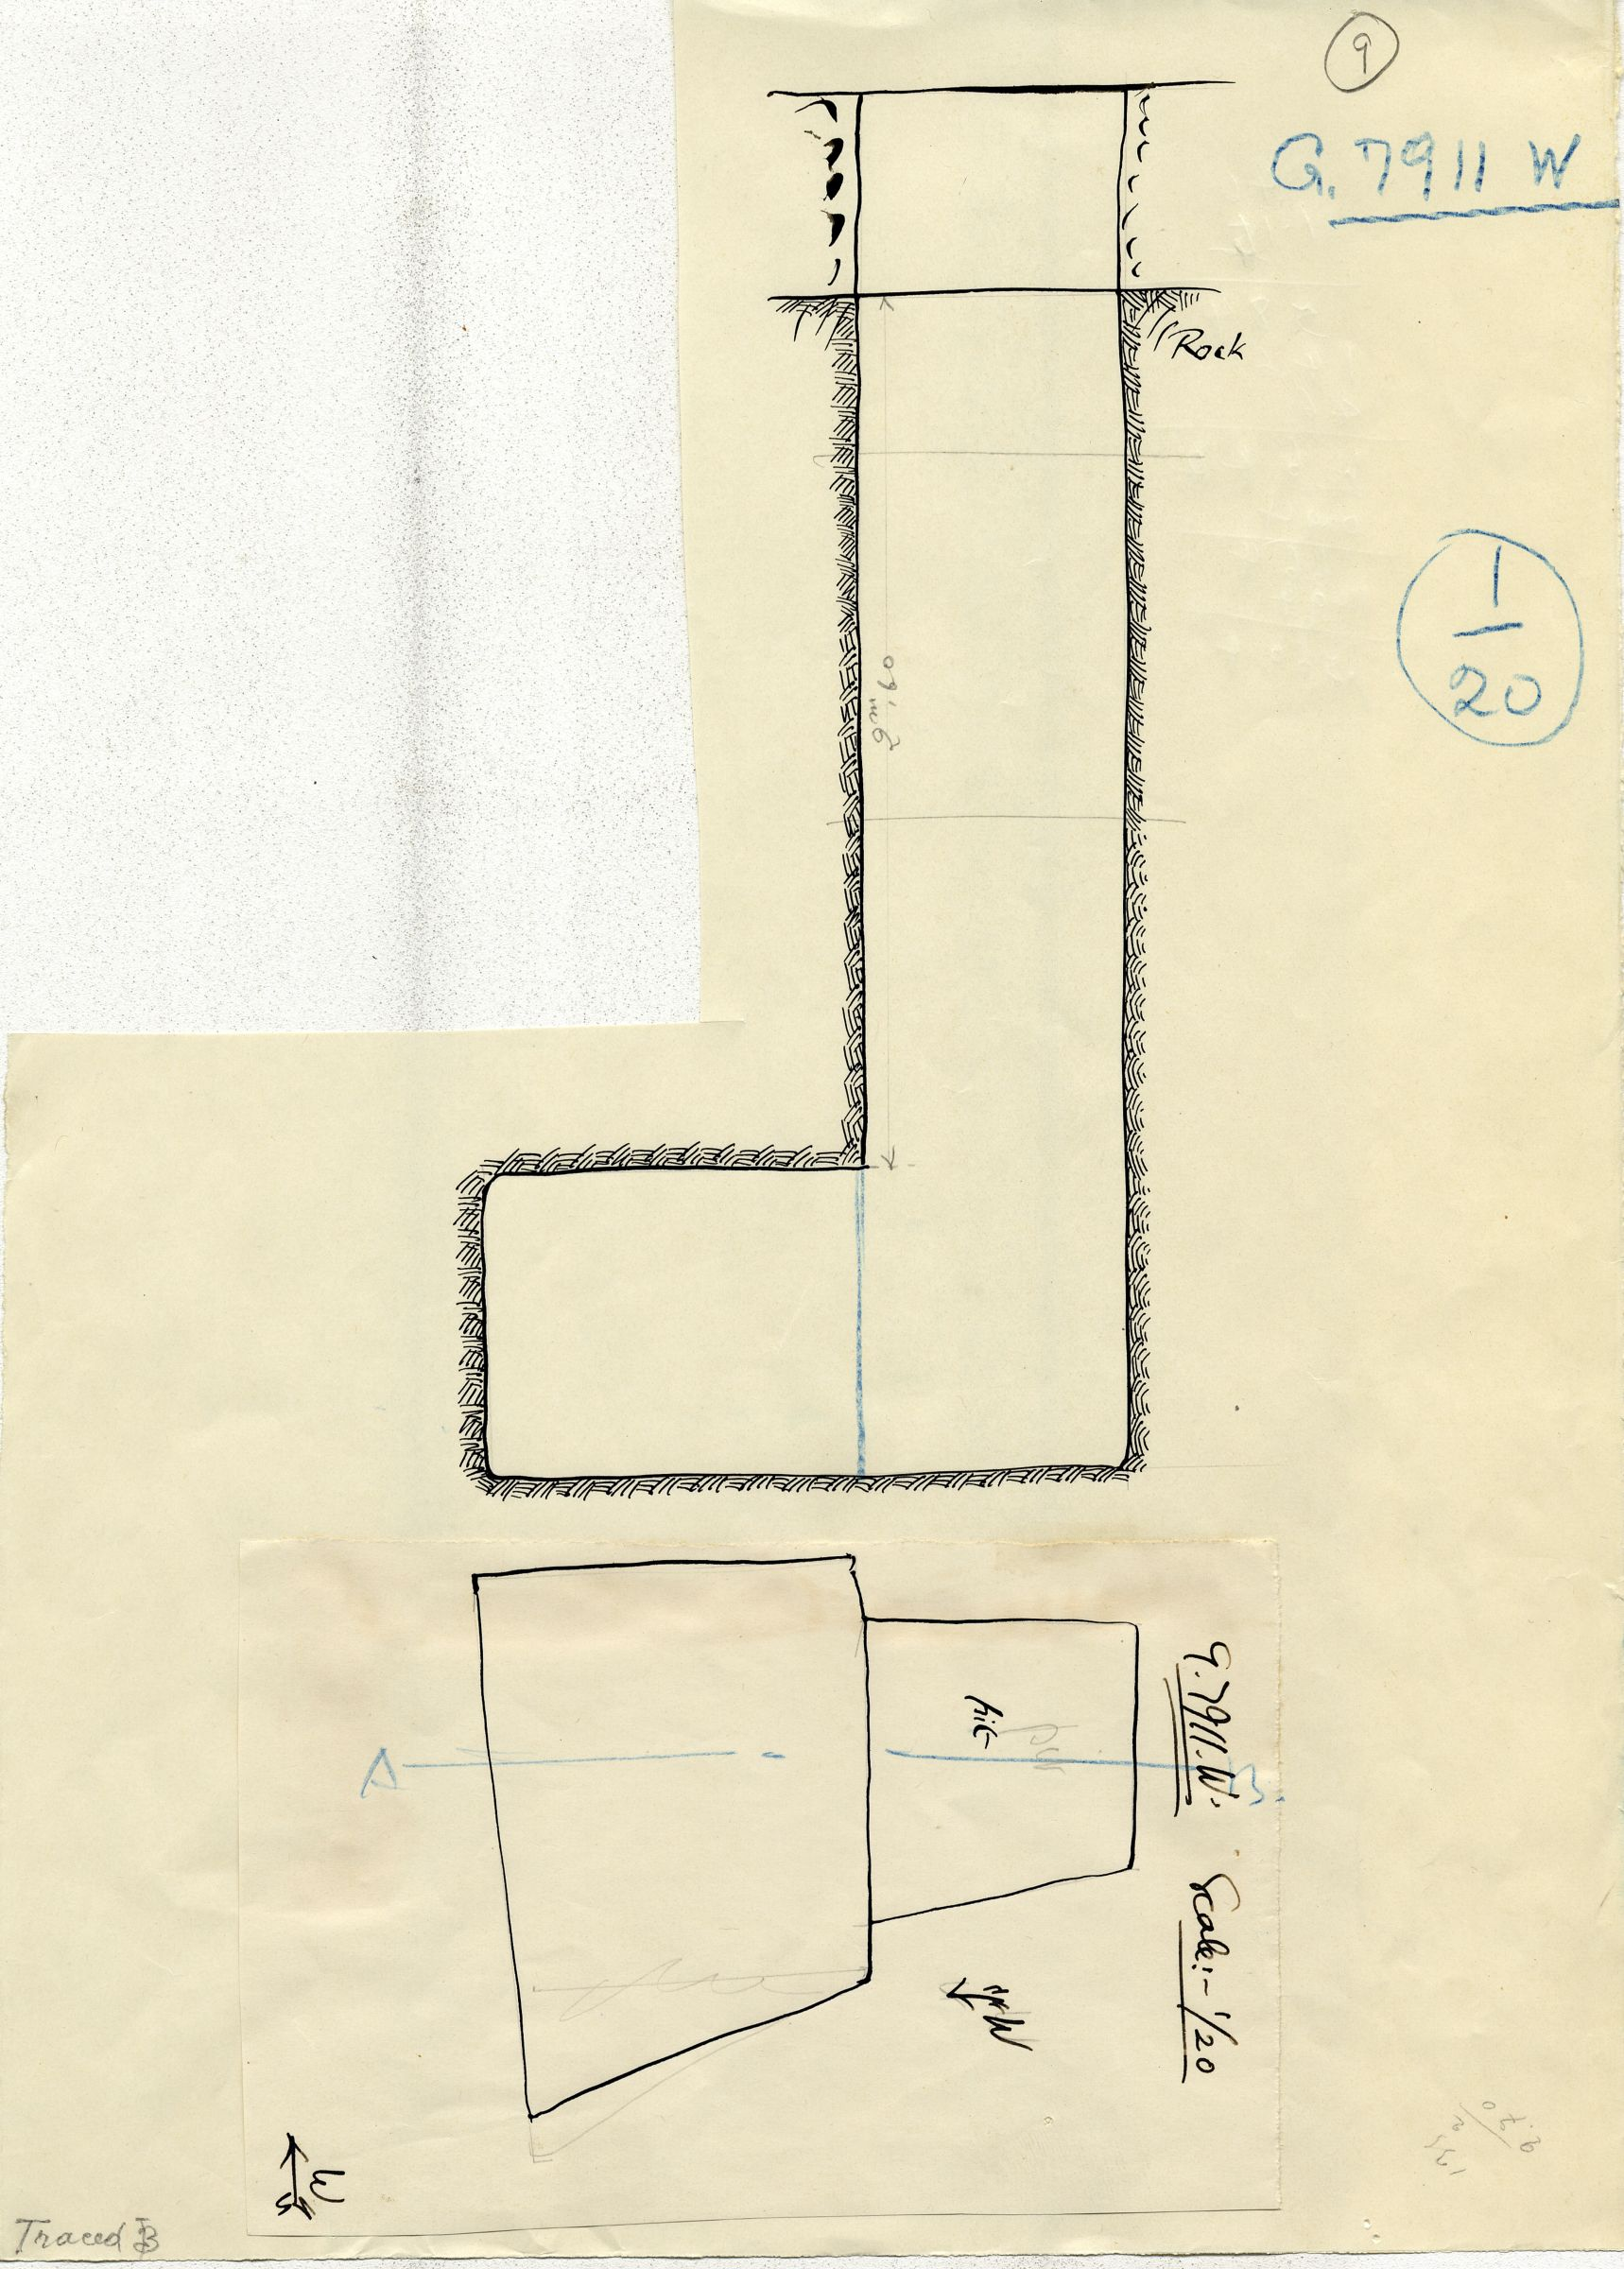 Maps and plans: G 7911, Shaft W